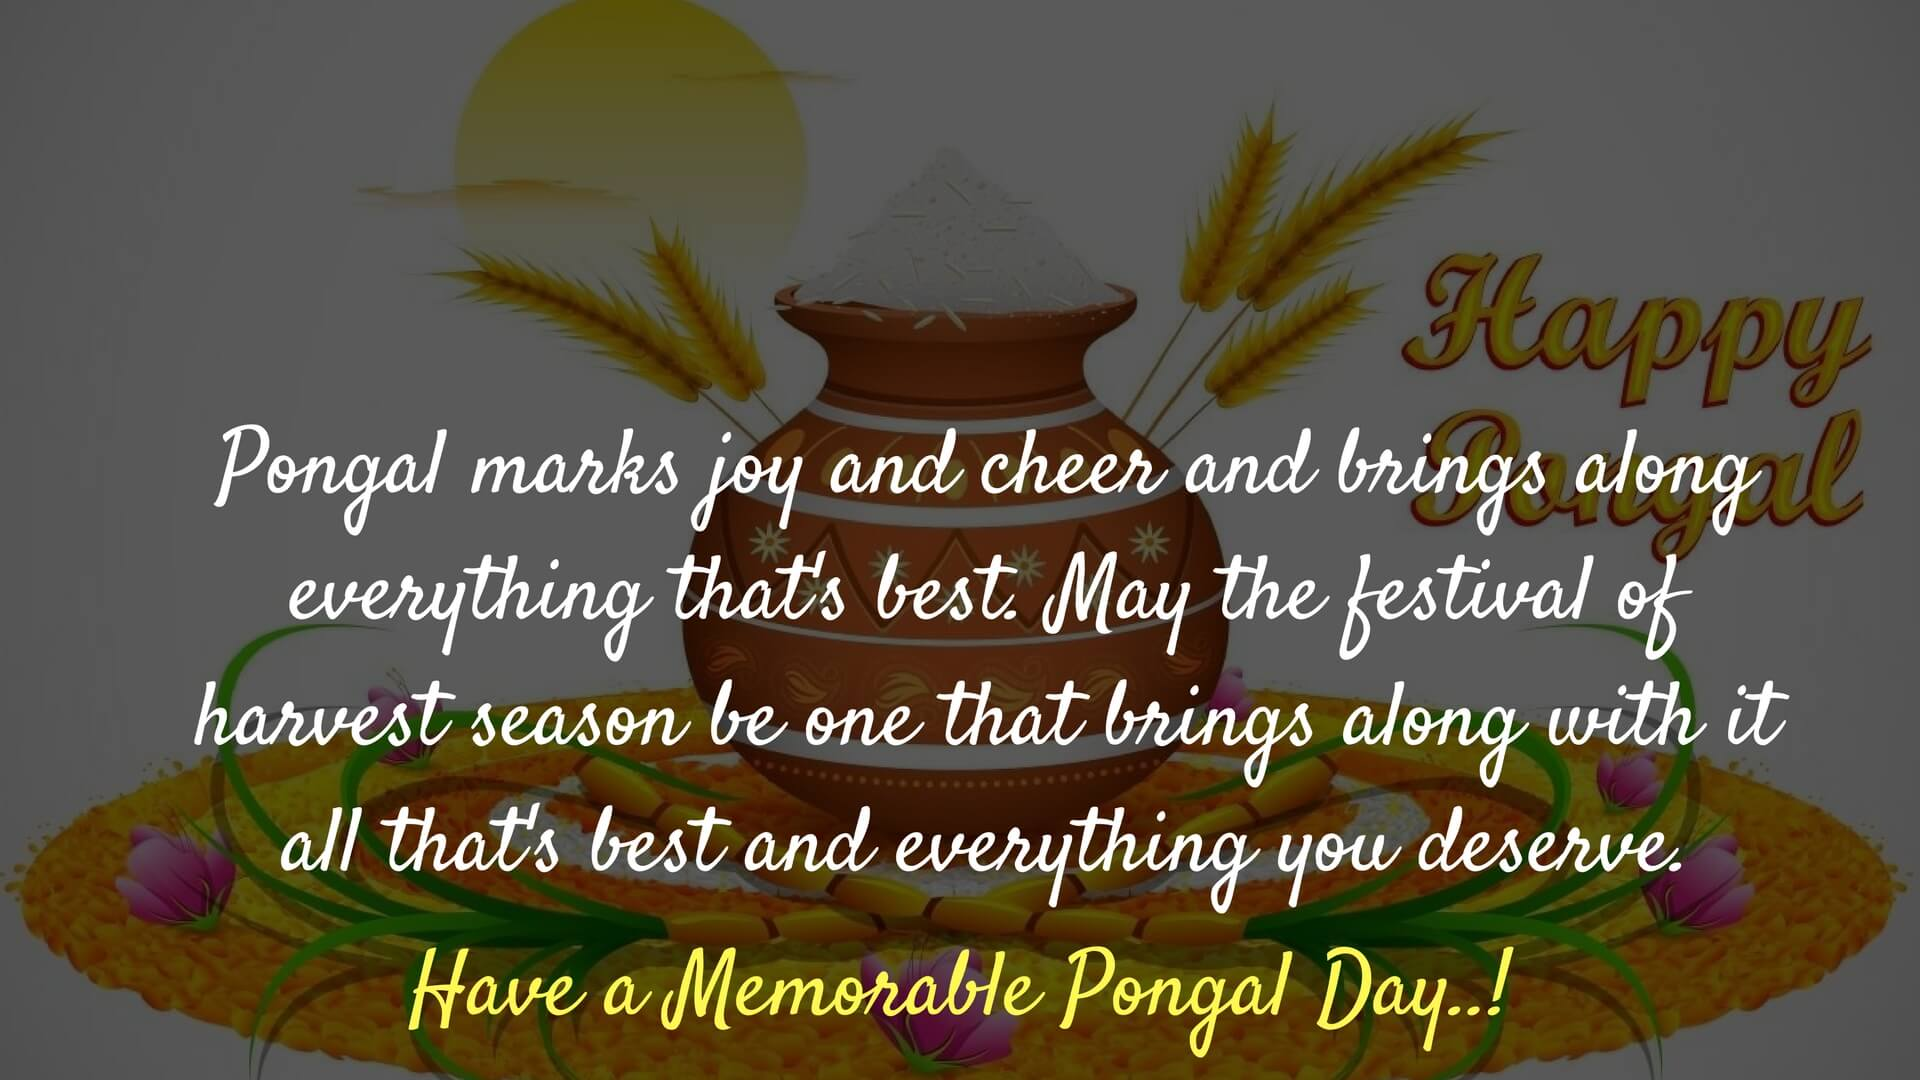 Happy pongal festival wishes 2018 messages greetings images pongal wishes pictures m4hsunfo Image collections